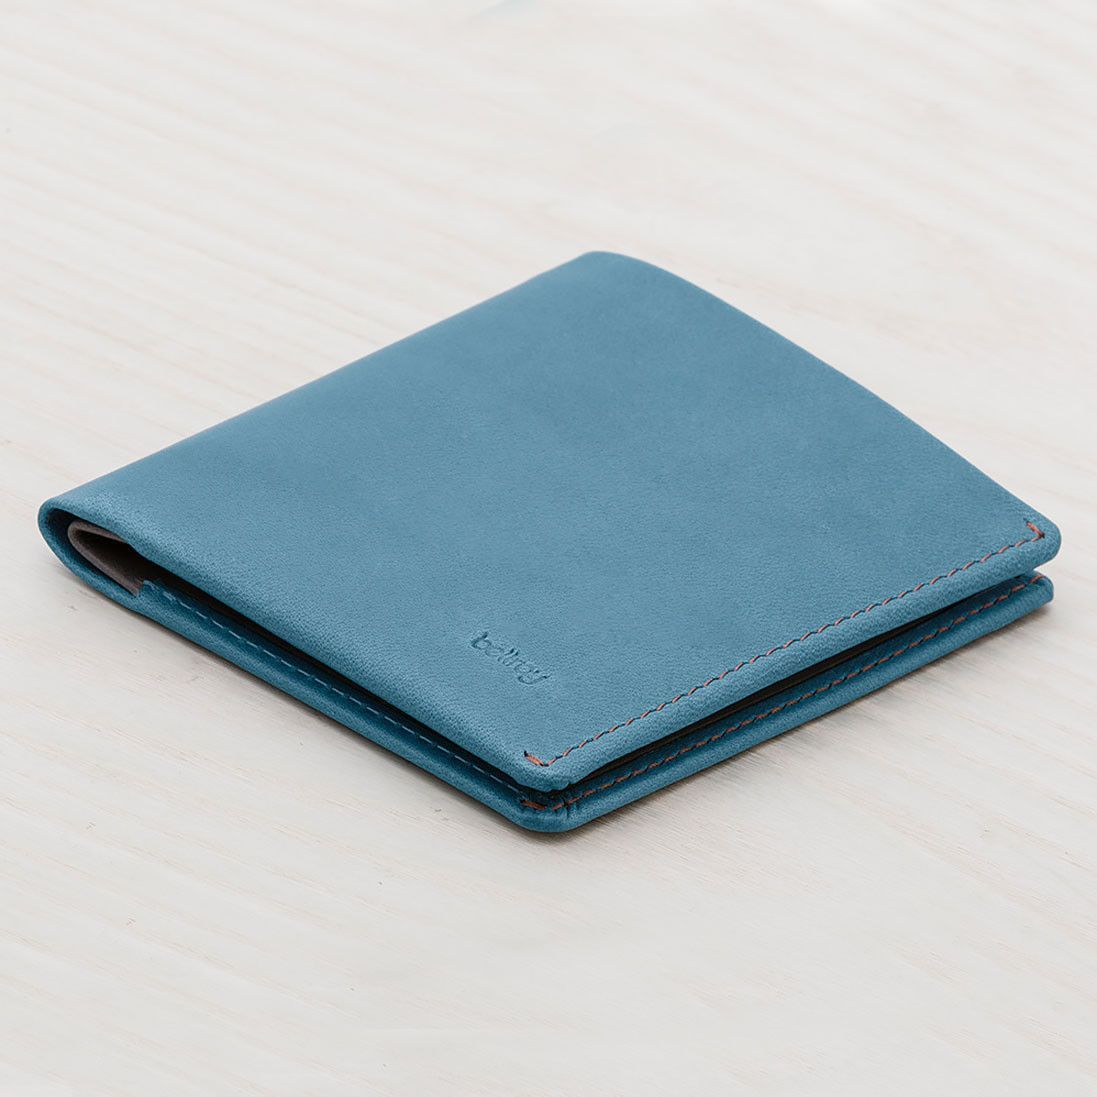 02271fb7c1 Bellroy Note Sleeve Wallet Arctic Blue | Products | Wallet, Sleeves ...